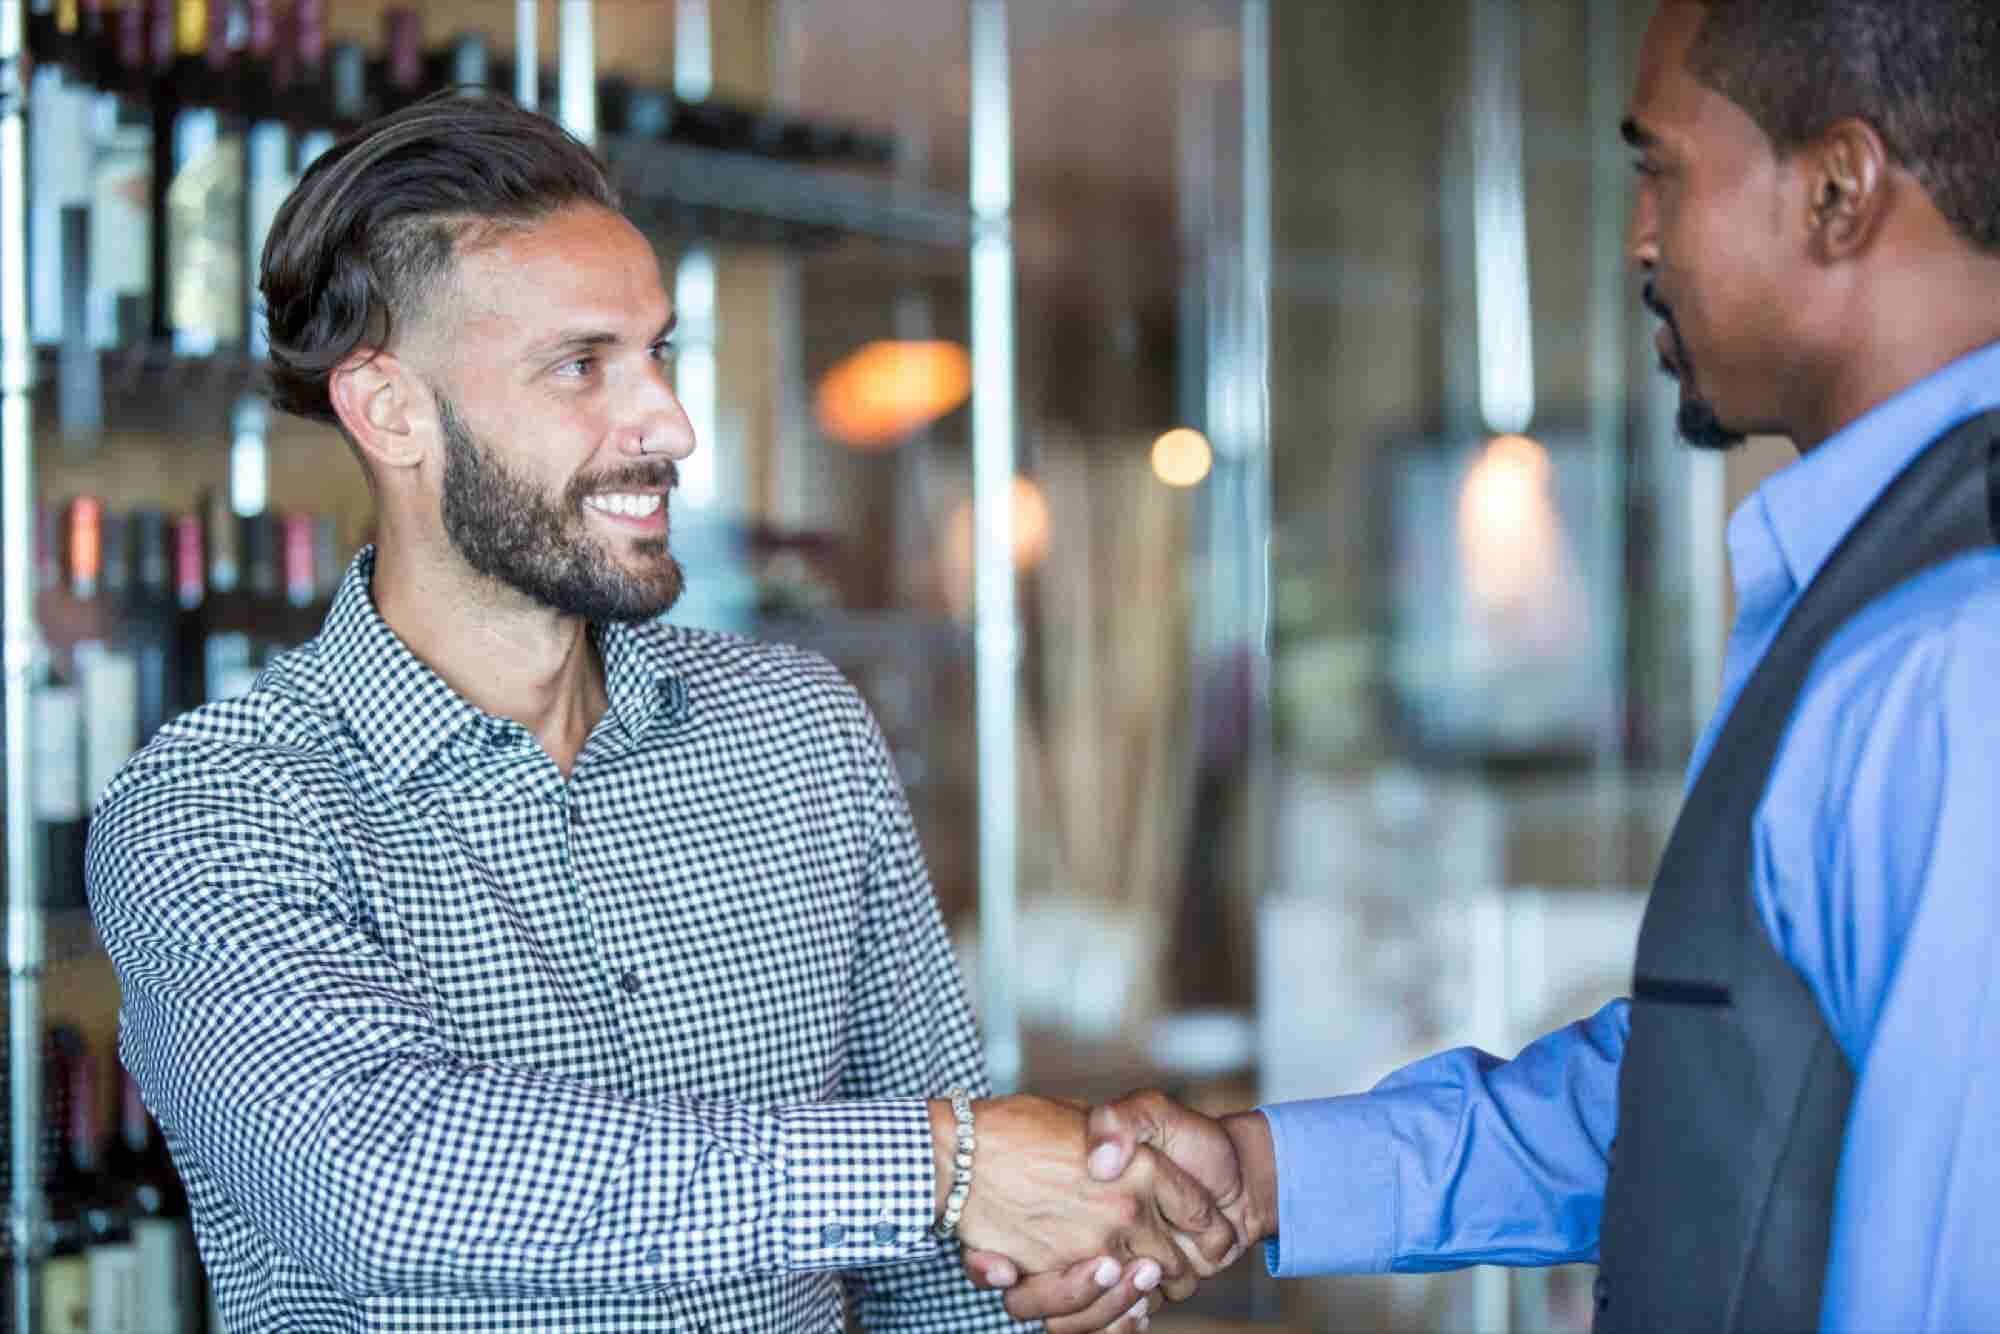 Closing a Deal at a Bar? This Research Can Help.